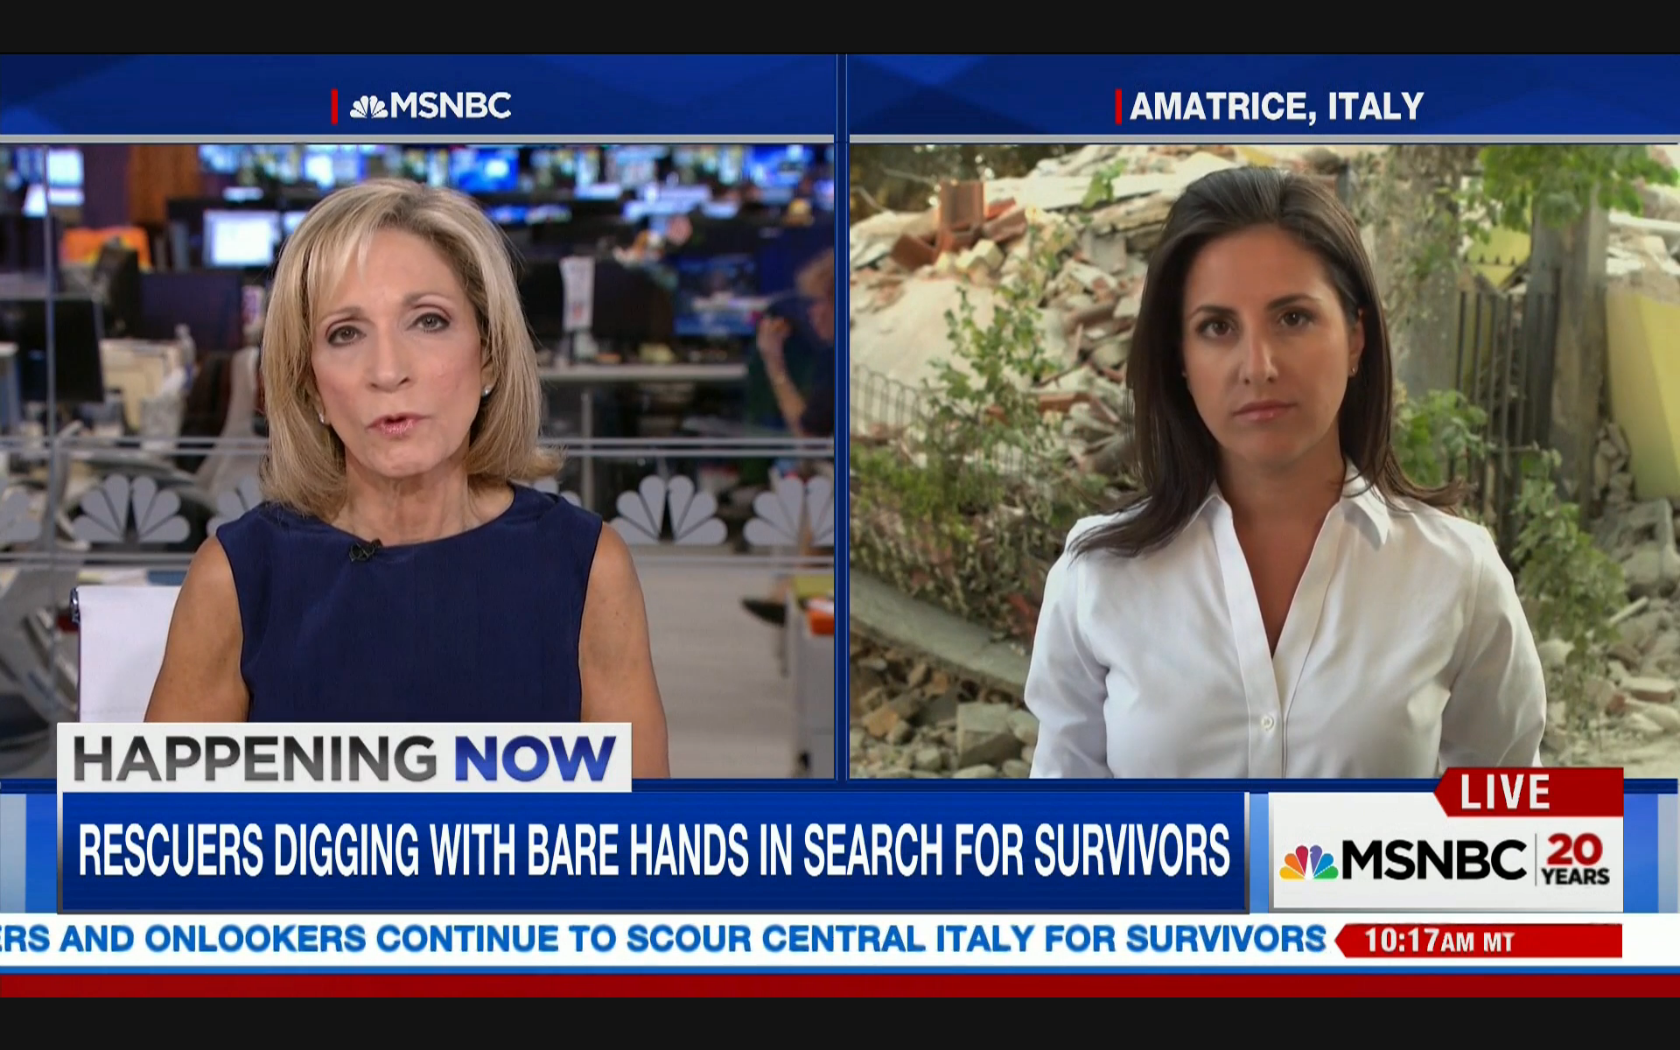 NBC's Lucy Kafanov on the scene of Italy's Amatrice earthquake. Live on MSNBC with Andrea Mitchell